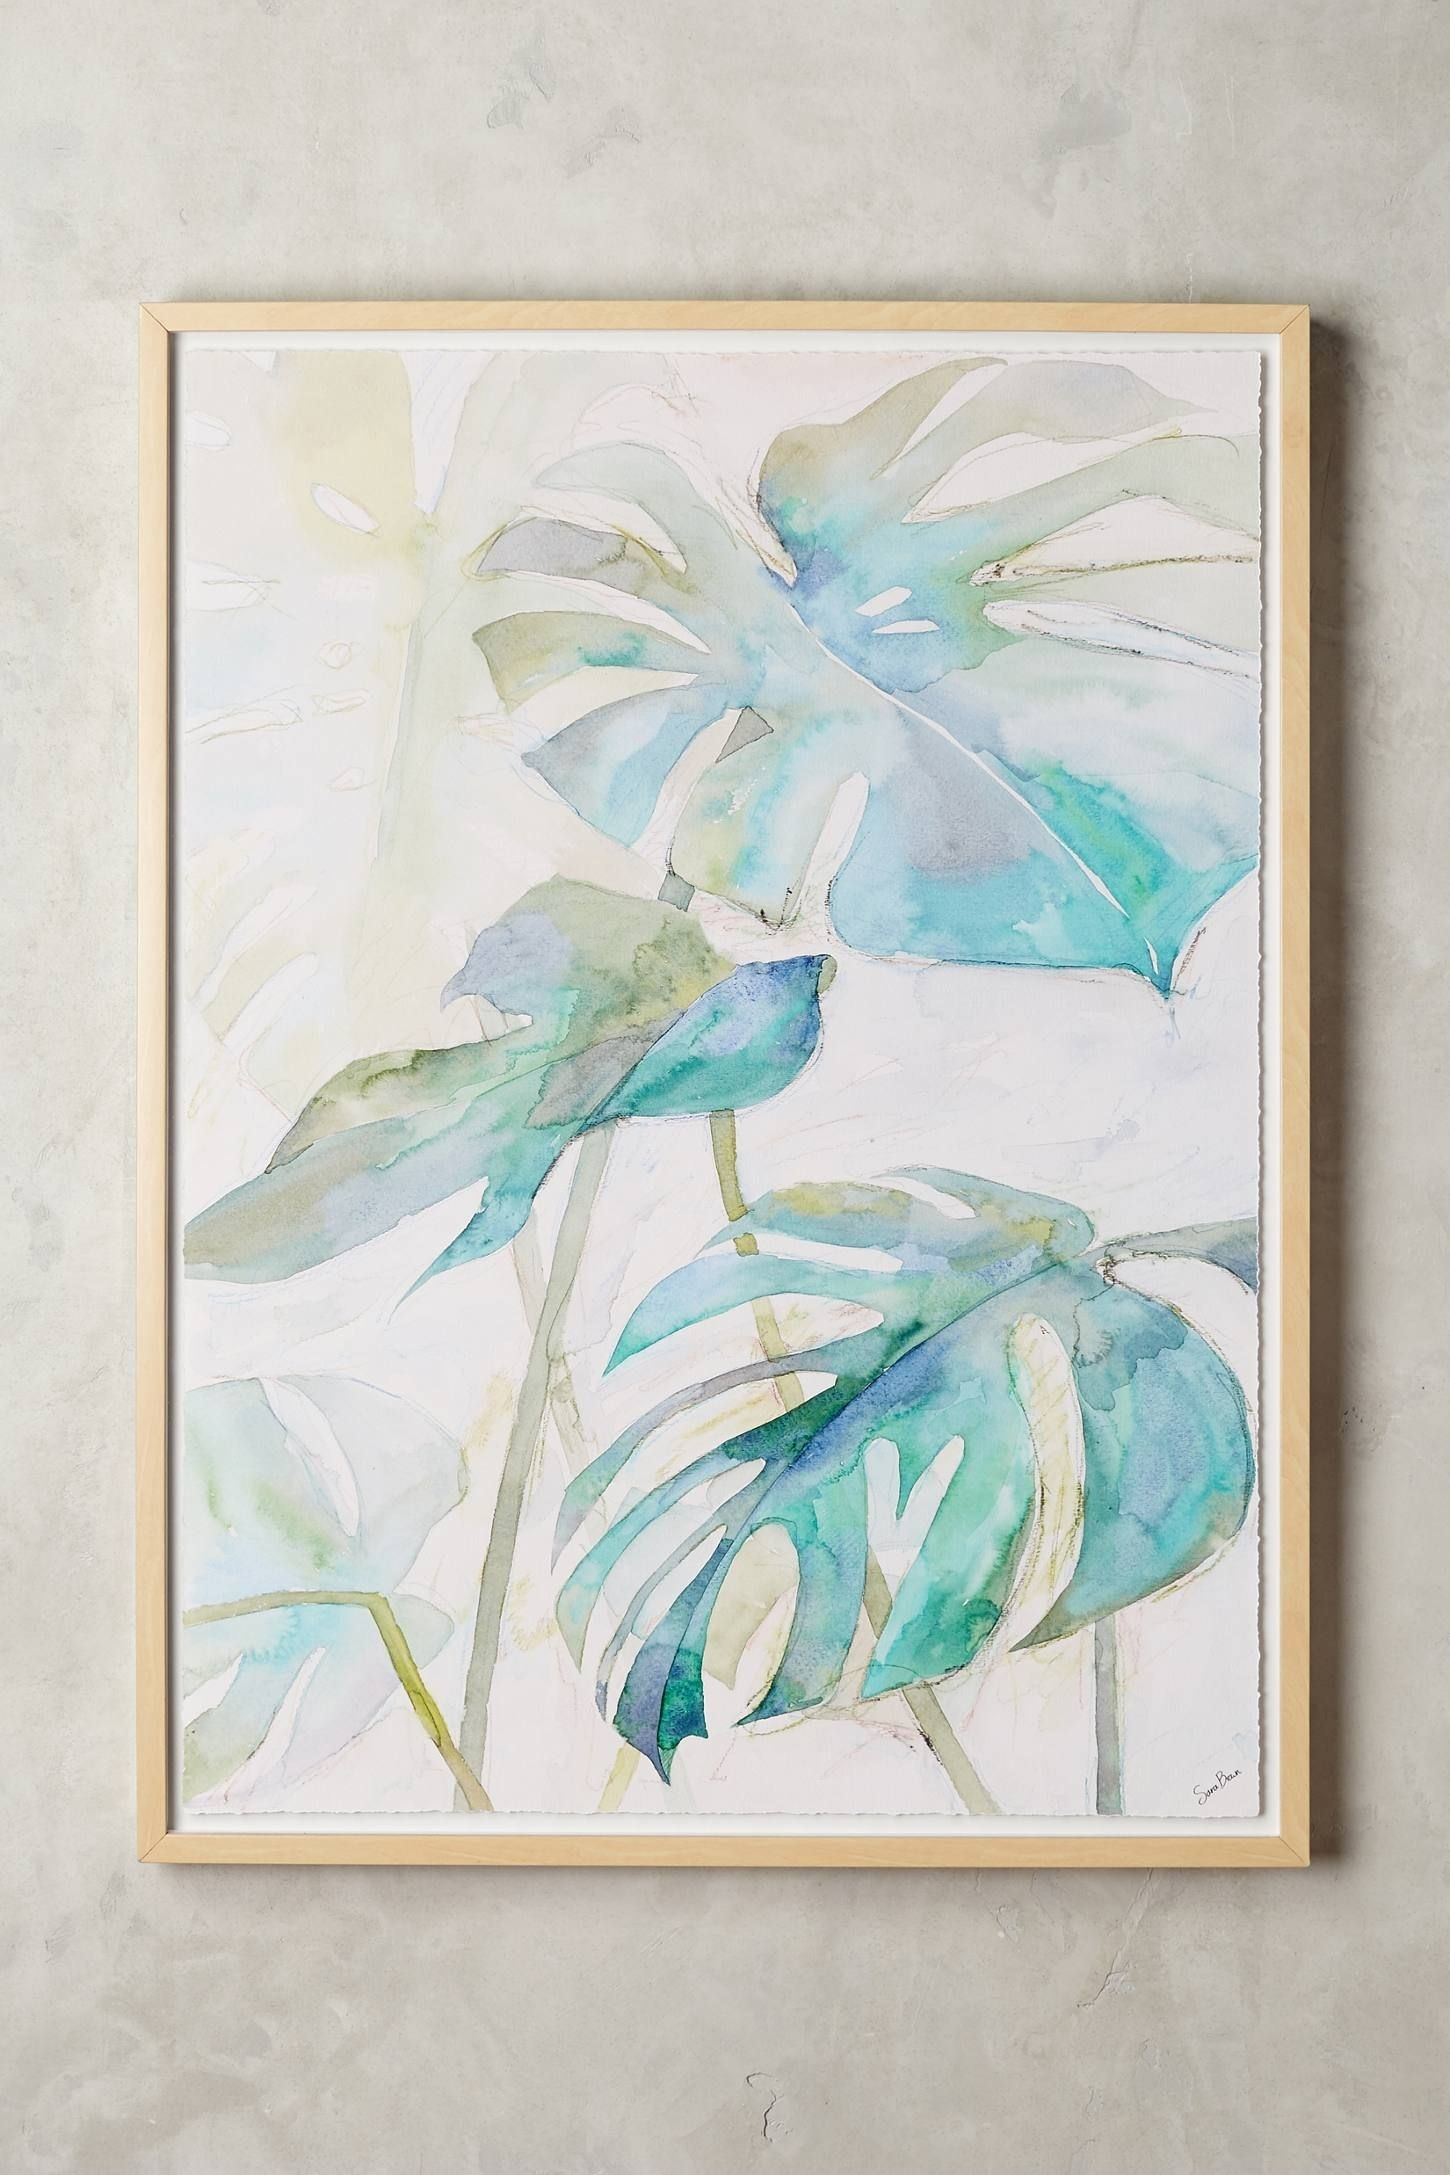 Tropicales Wall Art | Pinterest | Walls, Watercolor And Artwork Pertaining To Most Up To Date Anthropologie Wall Art (View 19 of 20)